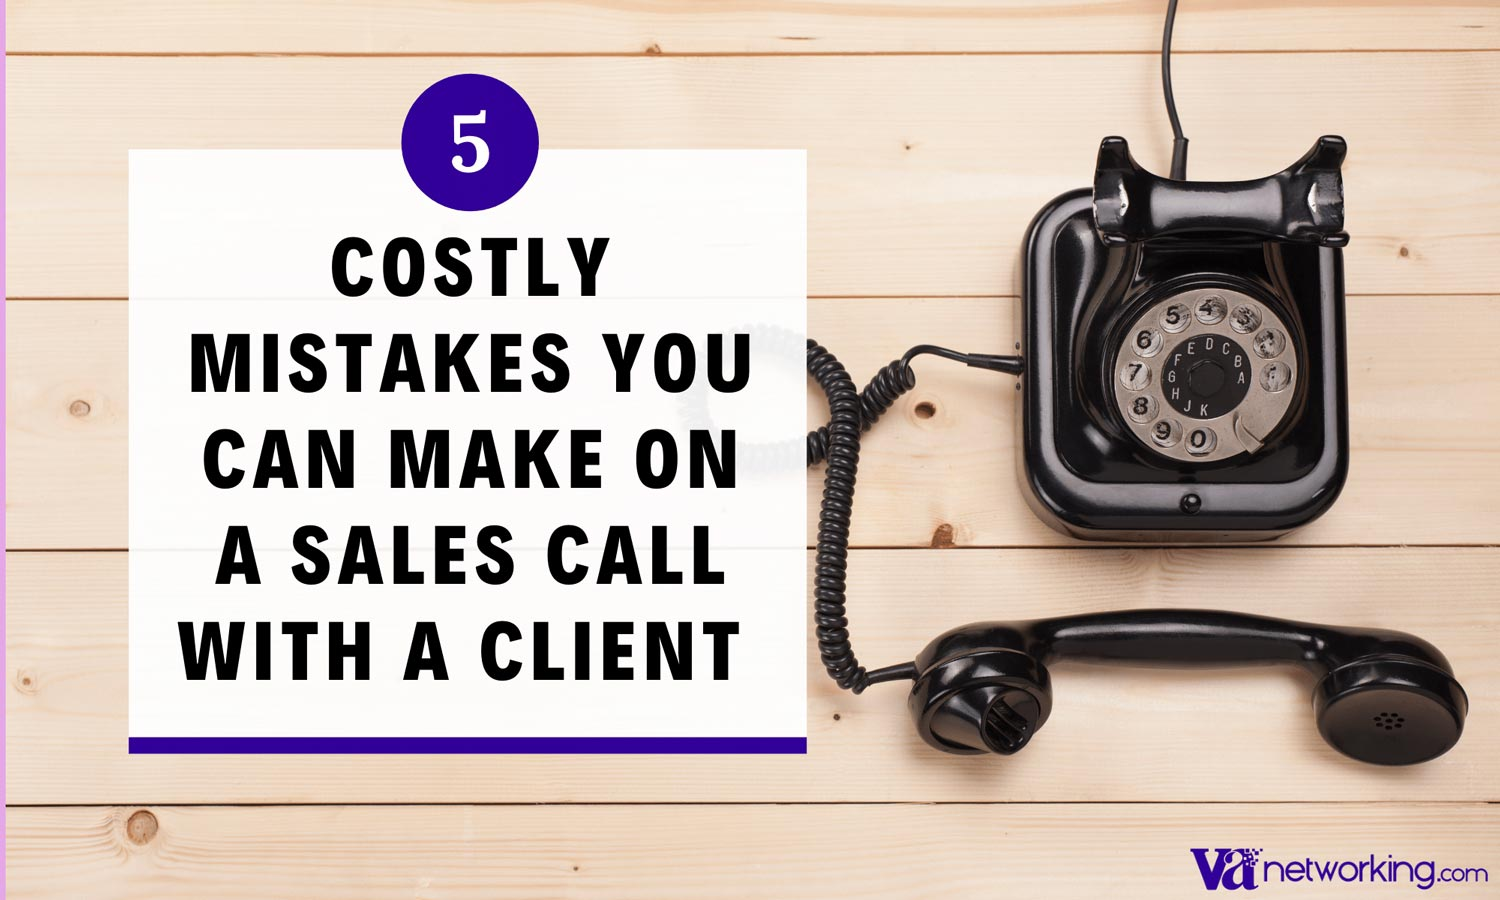 5 Costly Mistakes You Can Make on a Sales Call with a Client as a Virtual Assistant